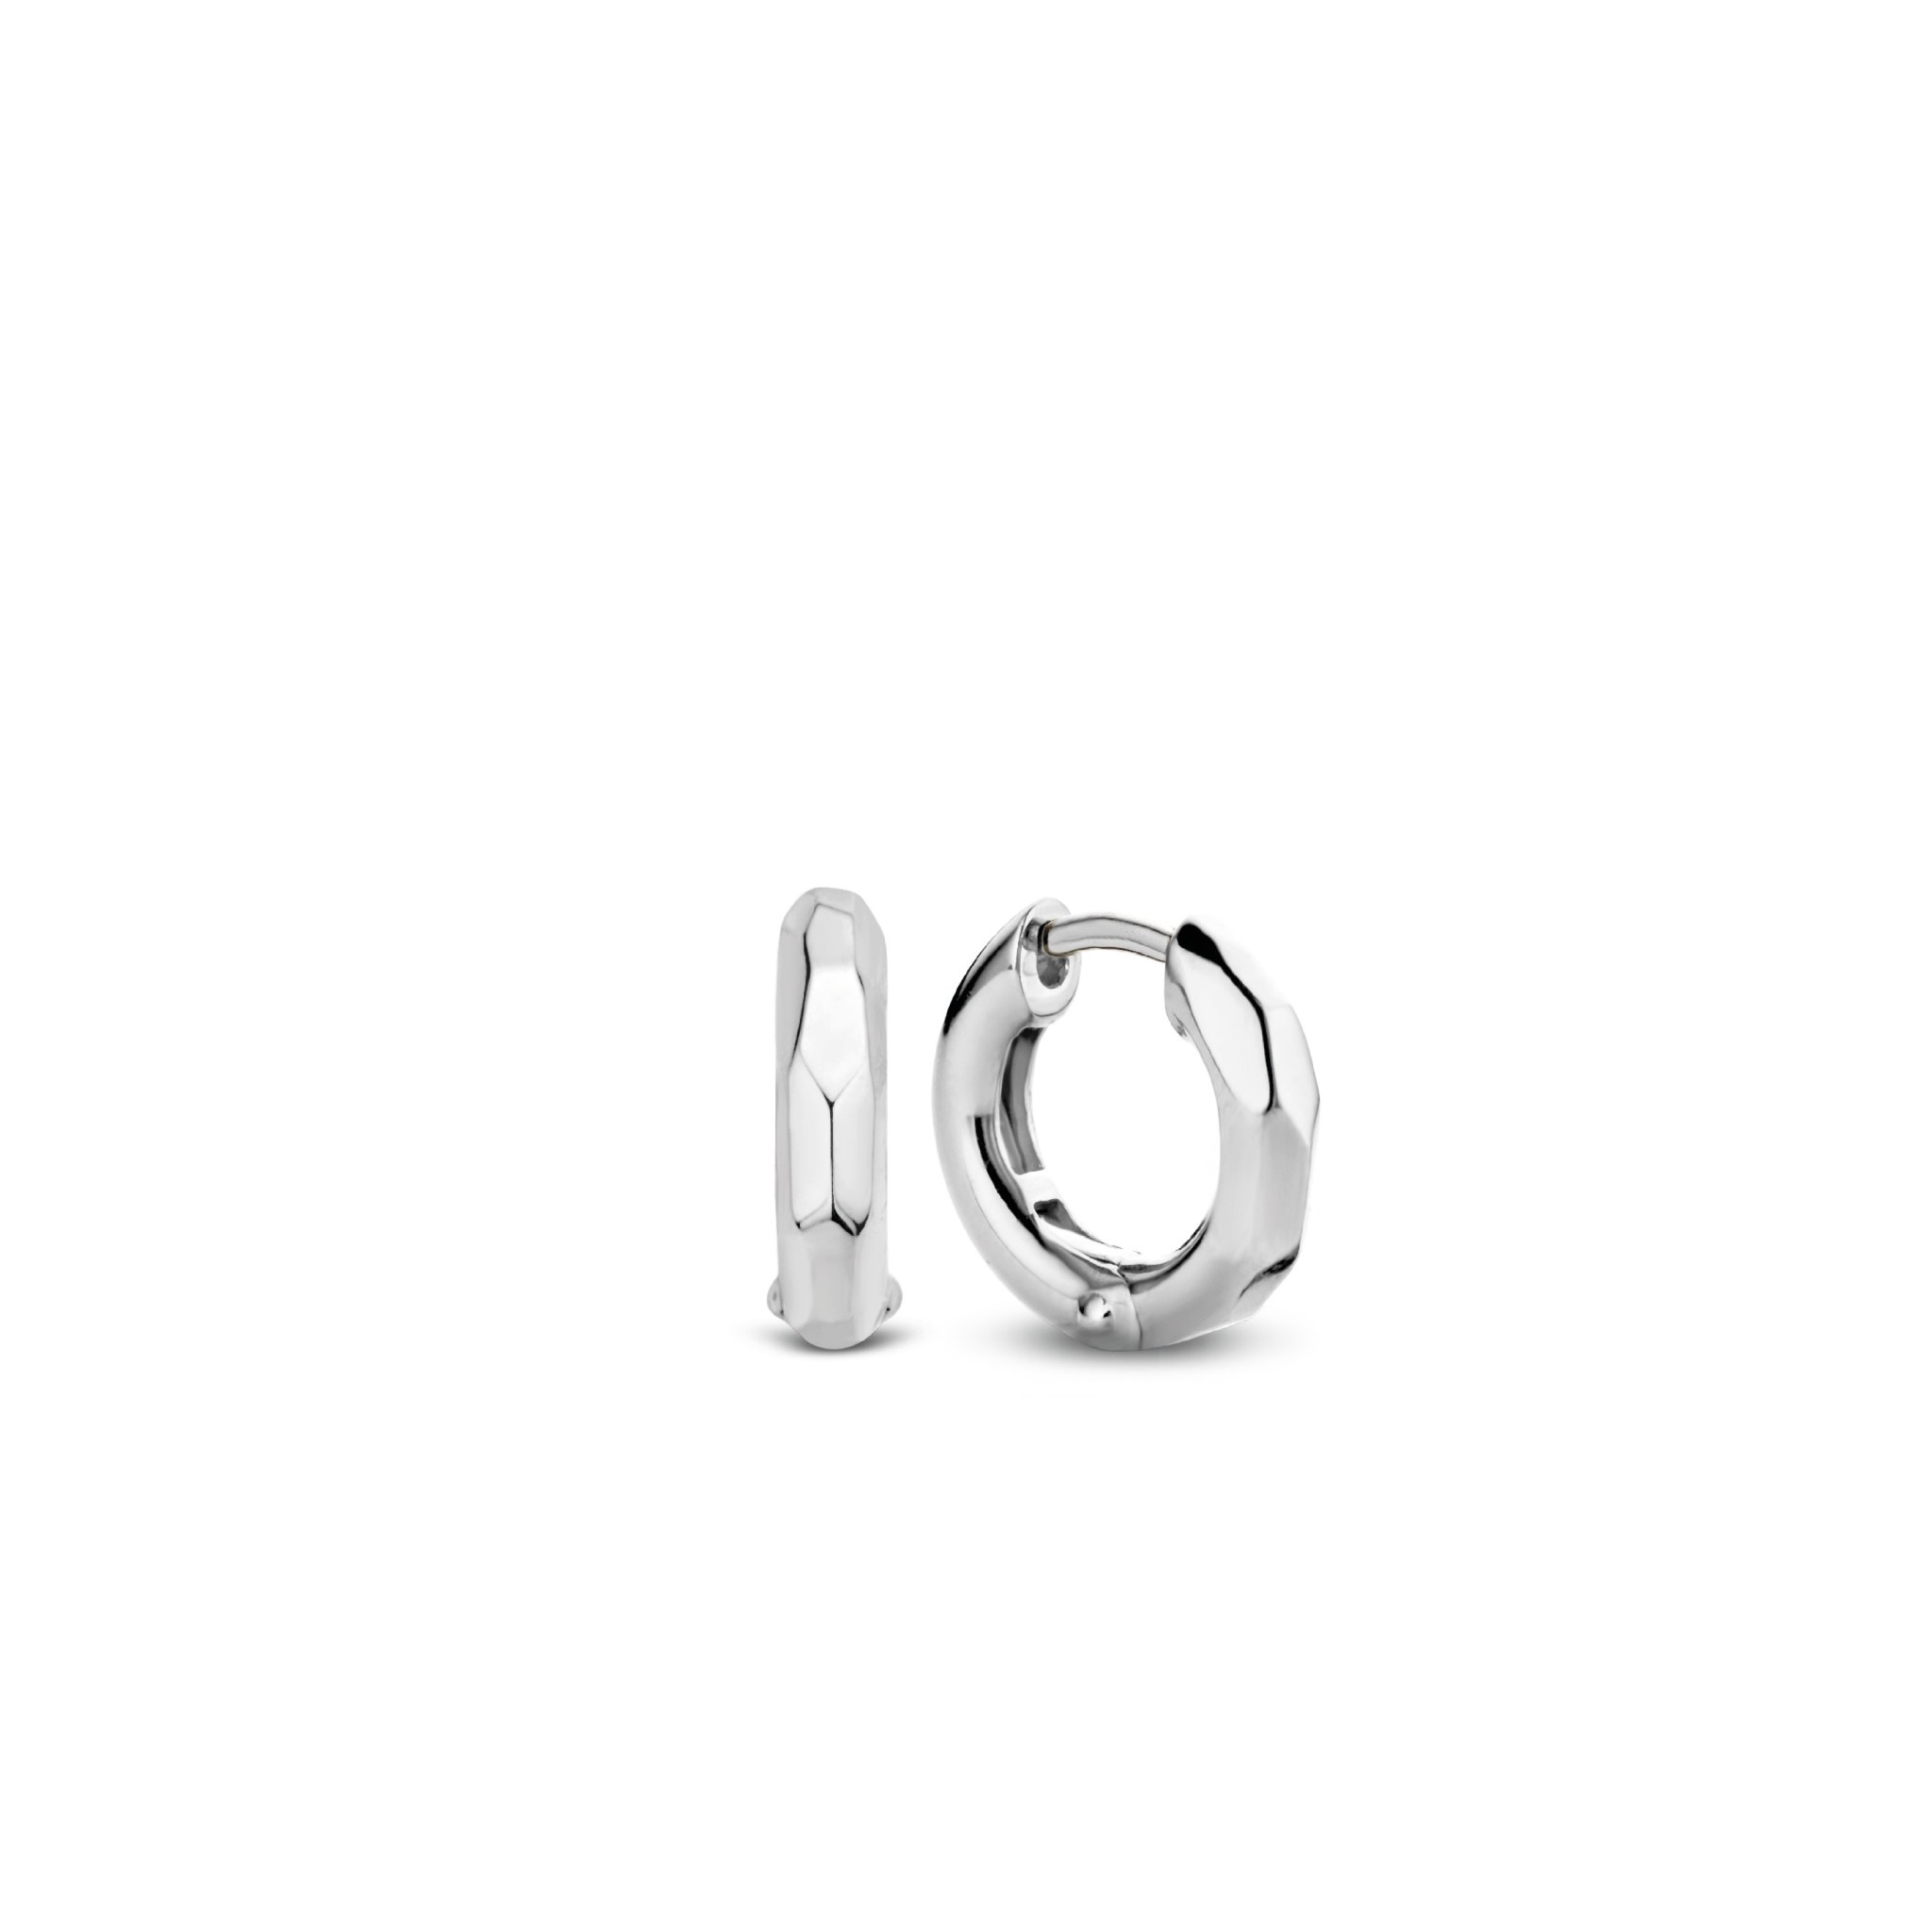 TI SENTO - Milano Earrings 7823SI-1